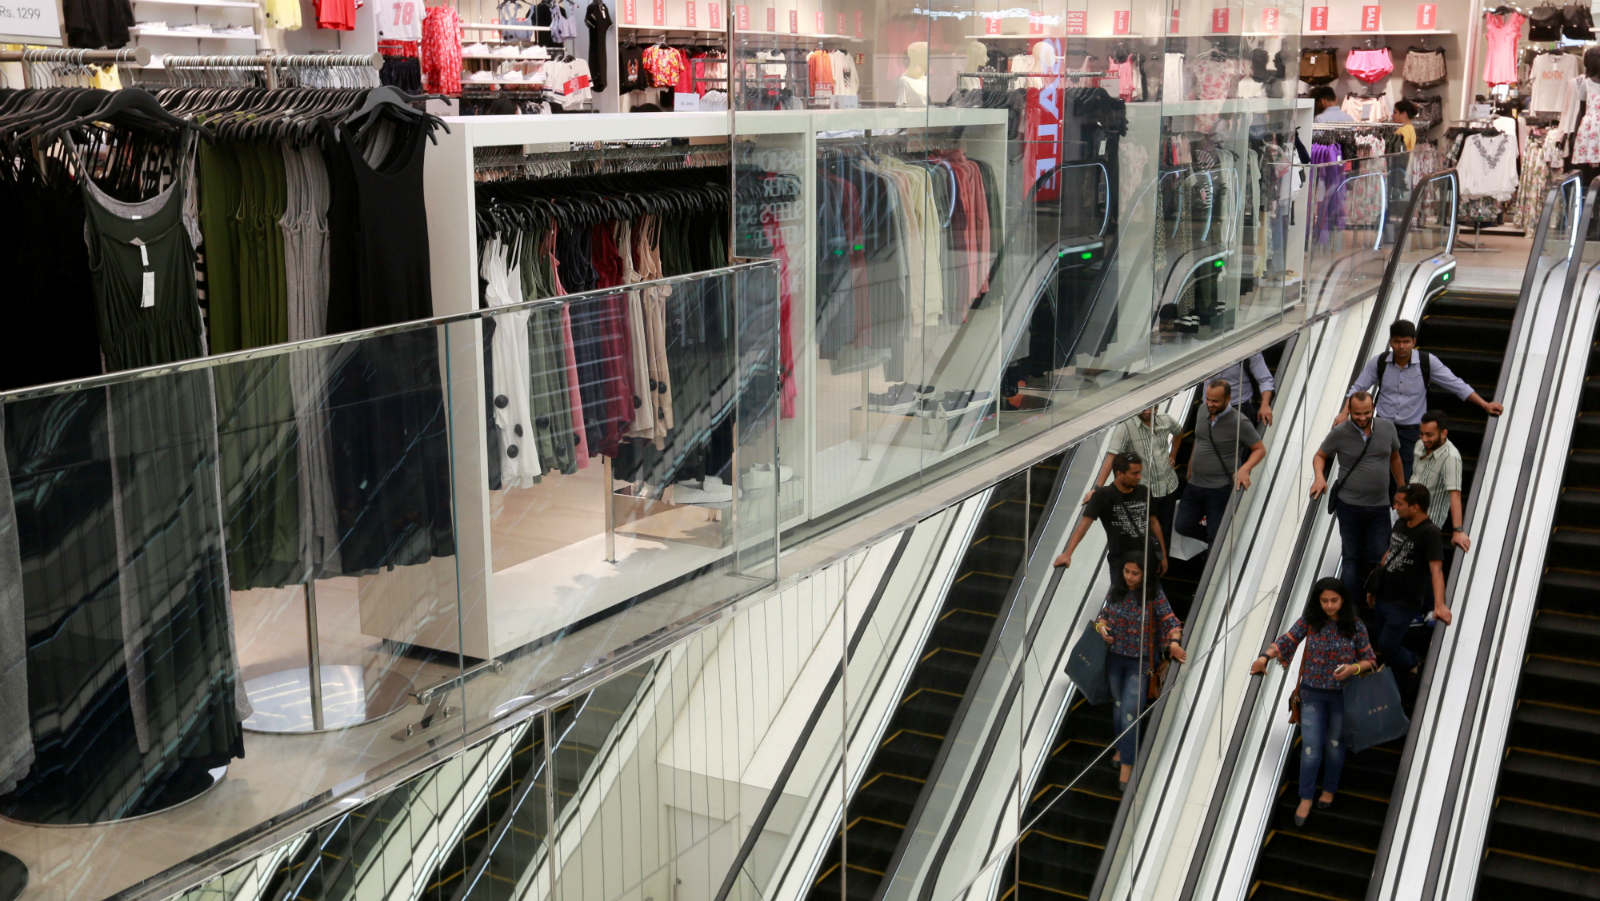 Shoppers ride escalators inside a store at a mall in Mumbai, India, July 10, 2017. Picture taken July 10, 2017.